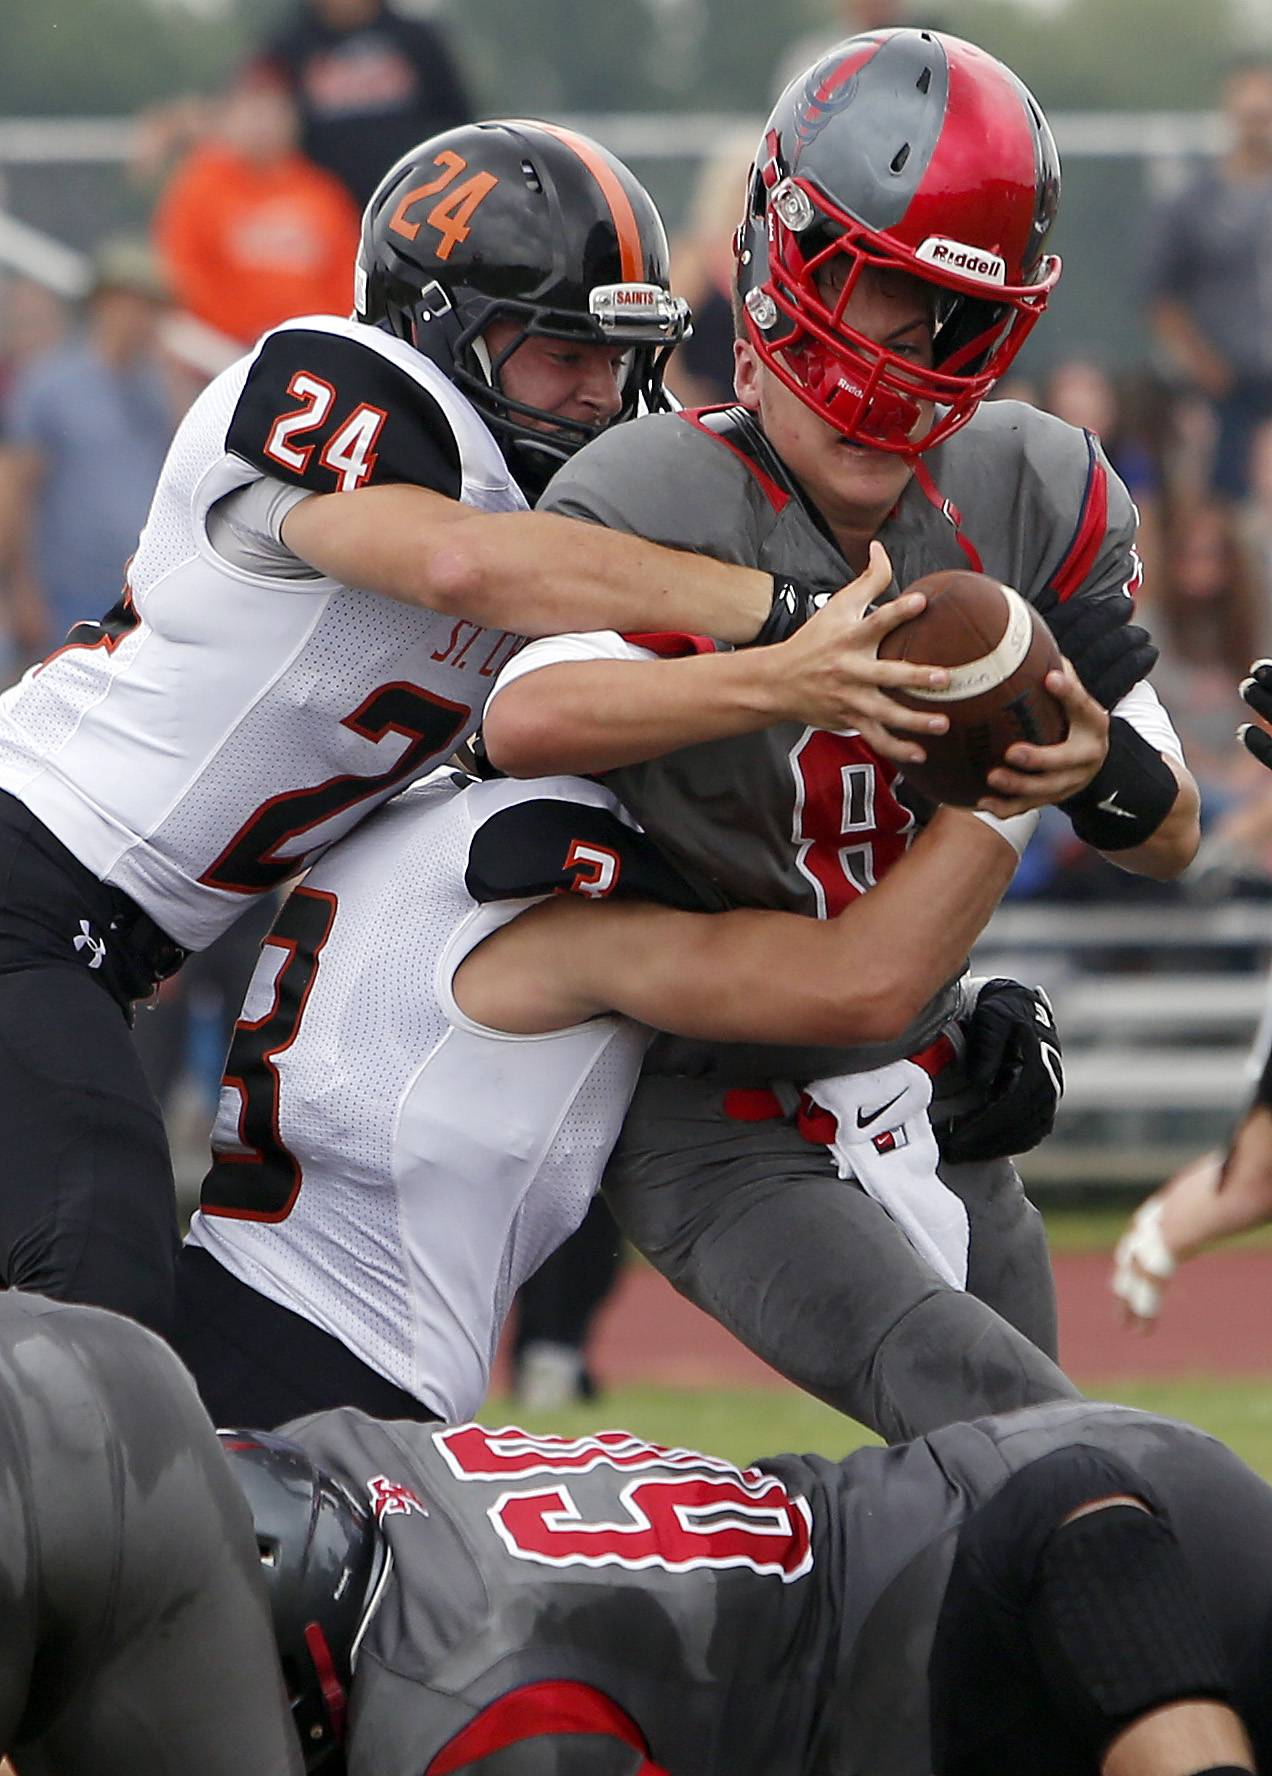 South Elgin quarterback Nate Gomez has his helmet knocked off as he is wrapped up by St. Charles East defensive back Nicholas Sherman (24) and linebacker David McDermott Saturday in South Elgin.